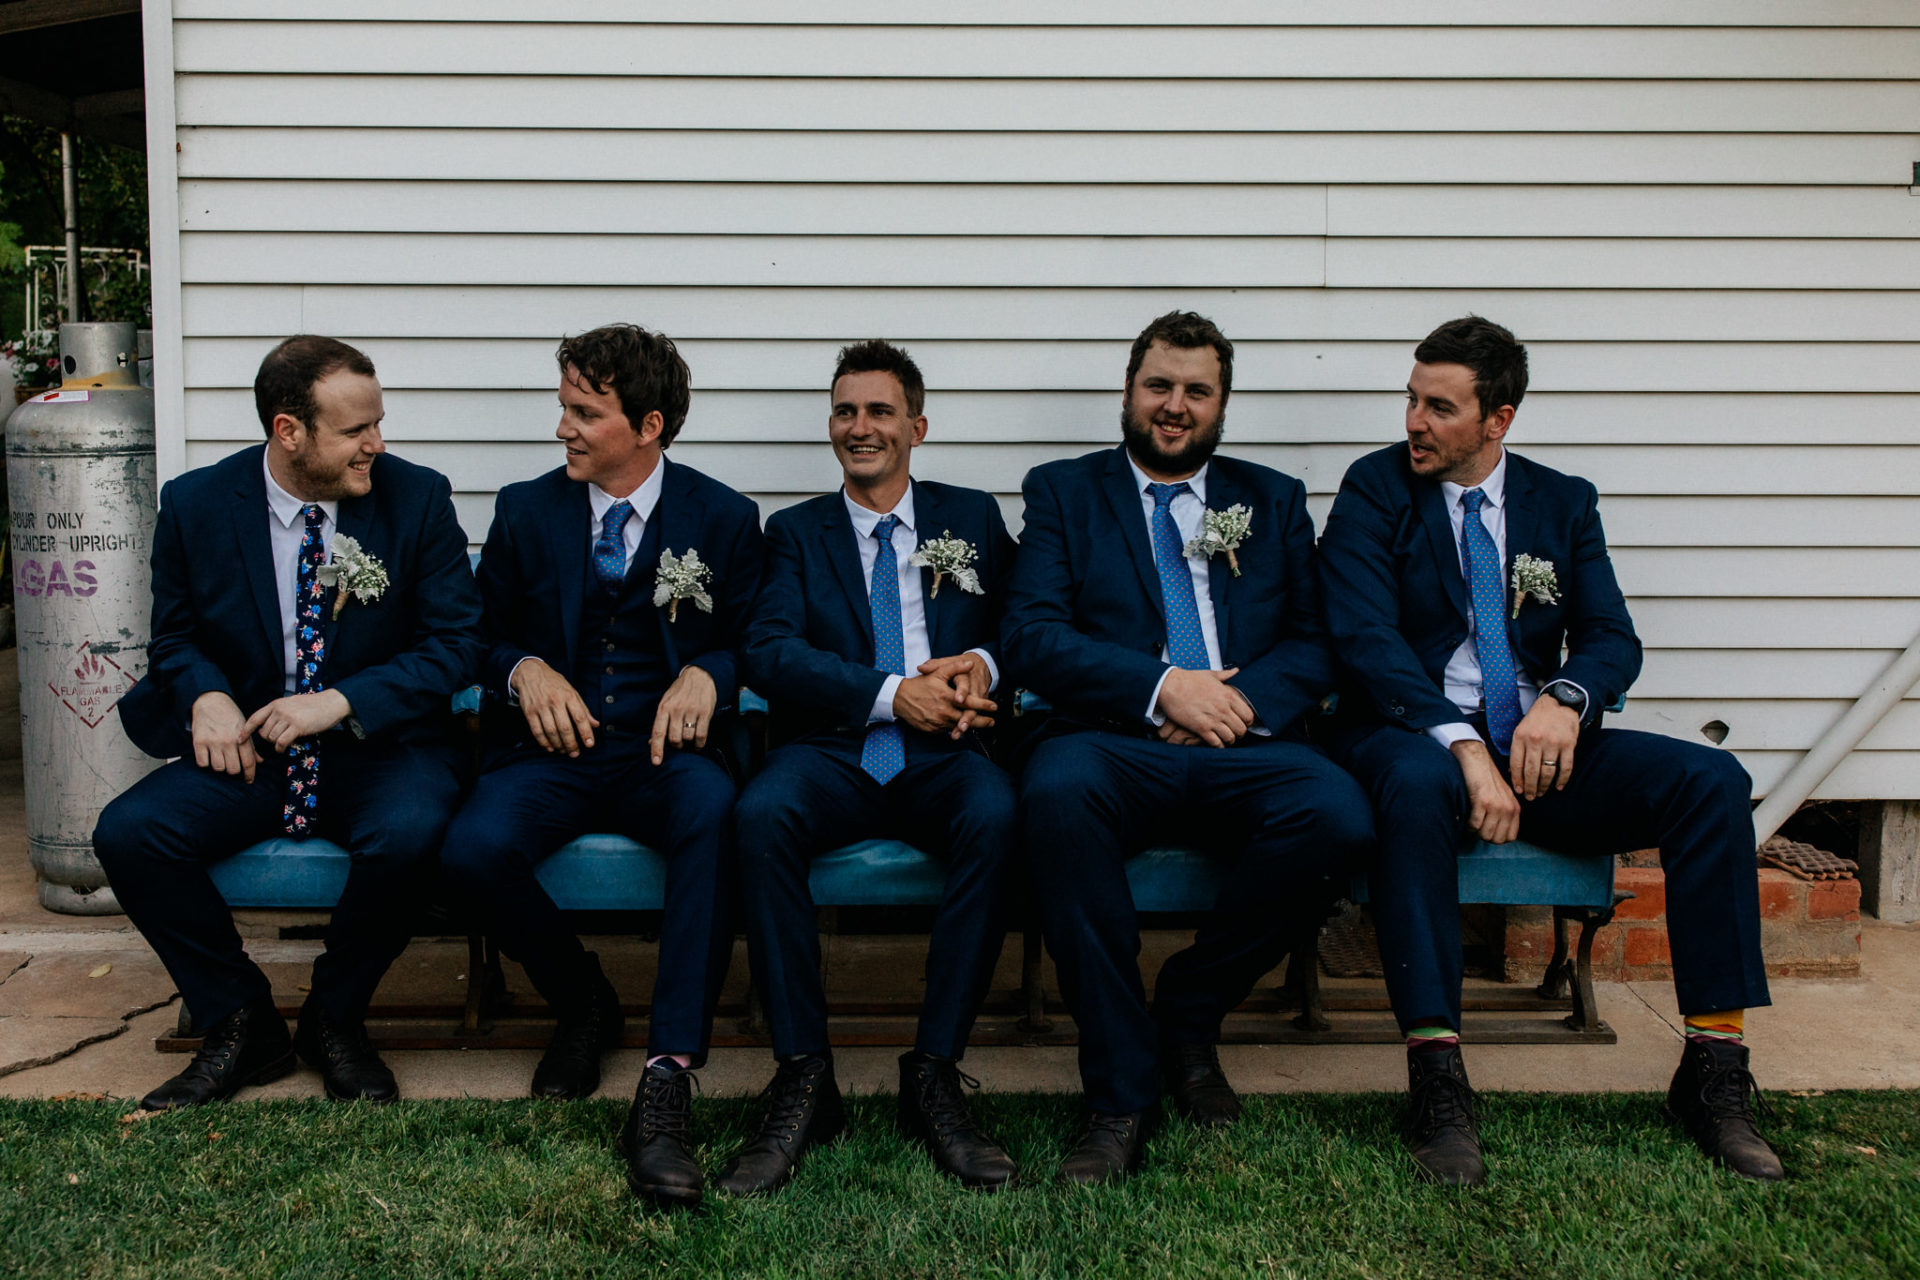 backyard-wedding-australia-melbourne-bridal-party-groomsmen-blue-suits